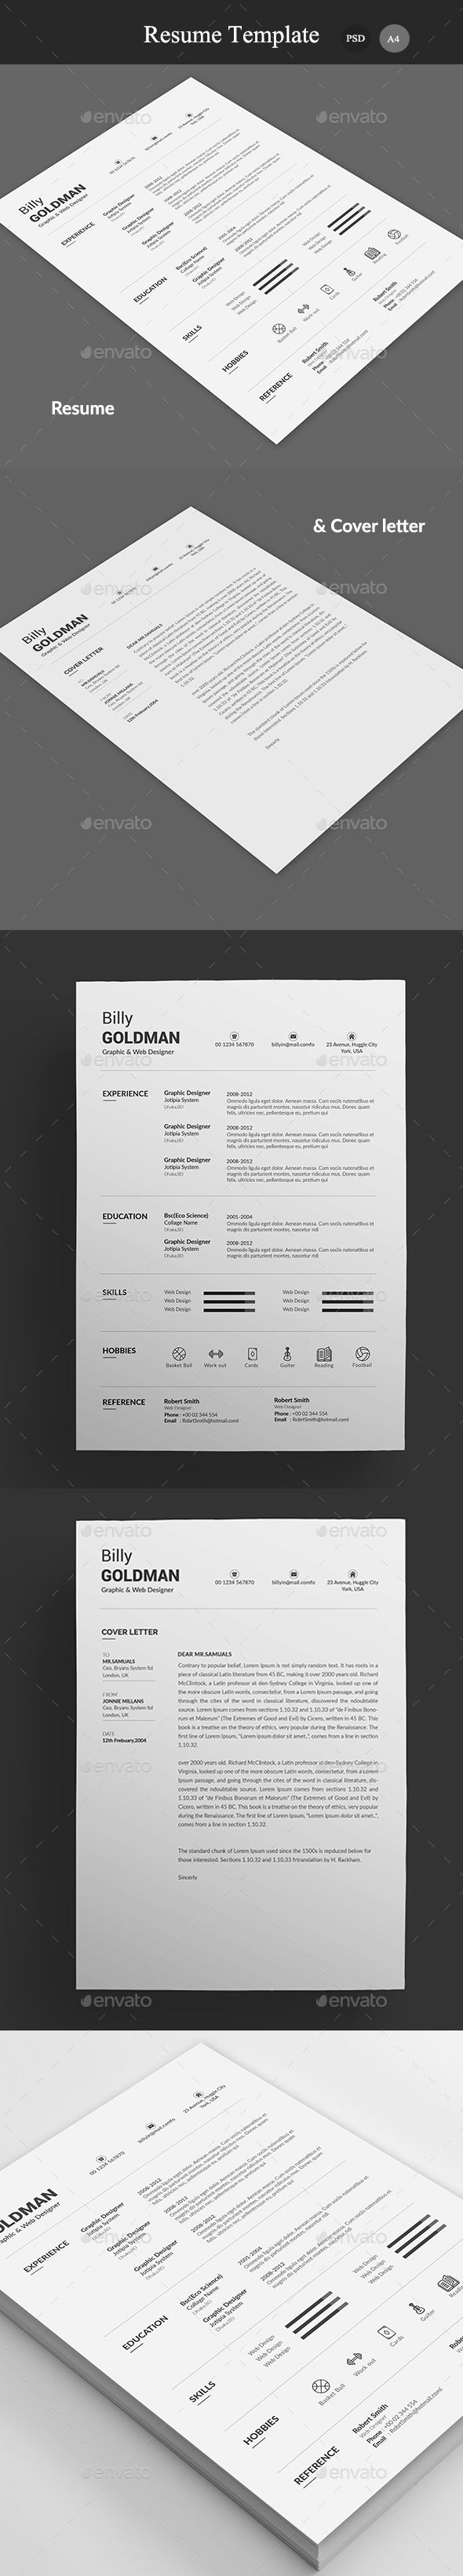 Resume #doc #fresh  • Download here → https://graphicriver.net/item/resume/19885558?ref=pxcr